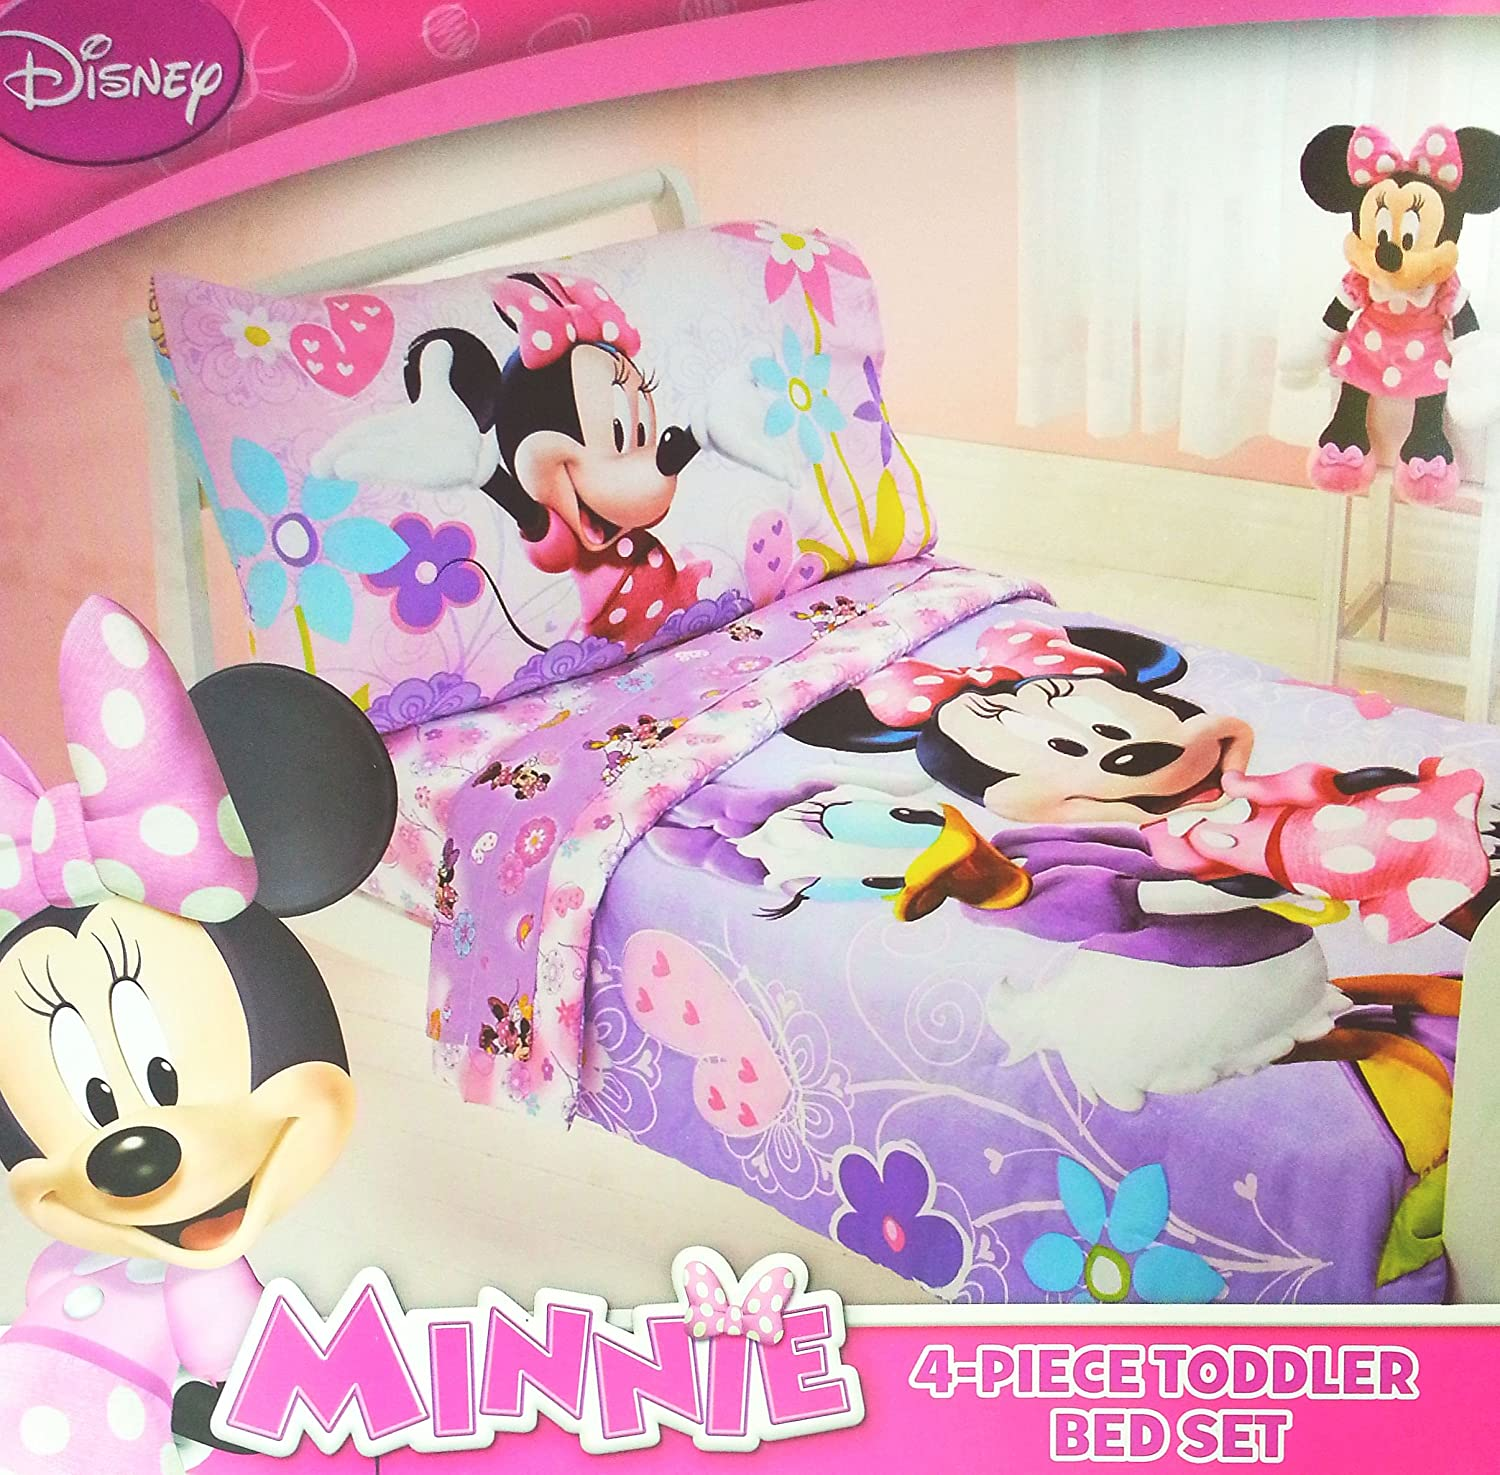 Minnie Mouse Toddler Bedroom Set: Minnie Mouse Bedding Set Toddler Crib Bed 4 Piece Girls